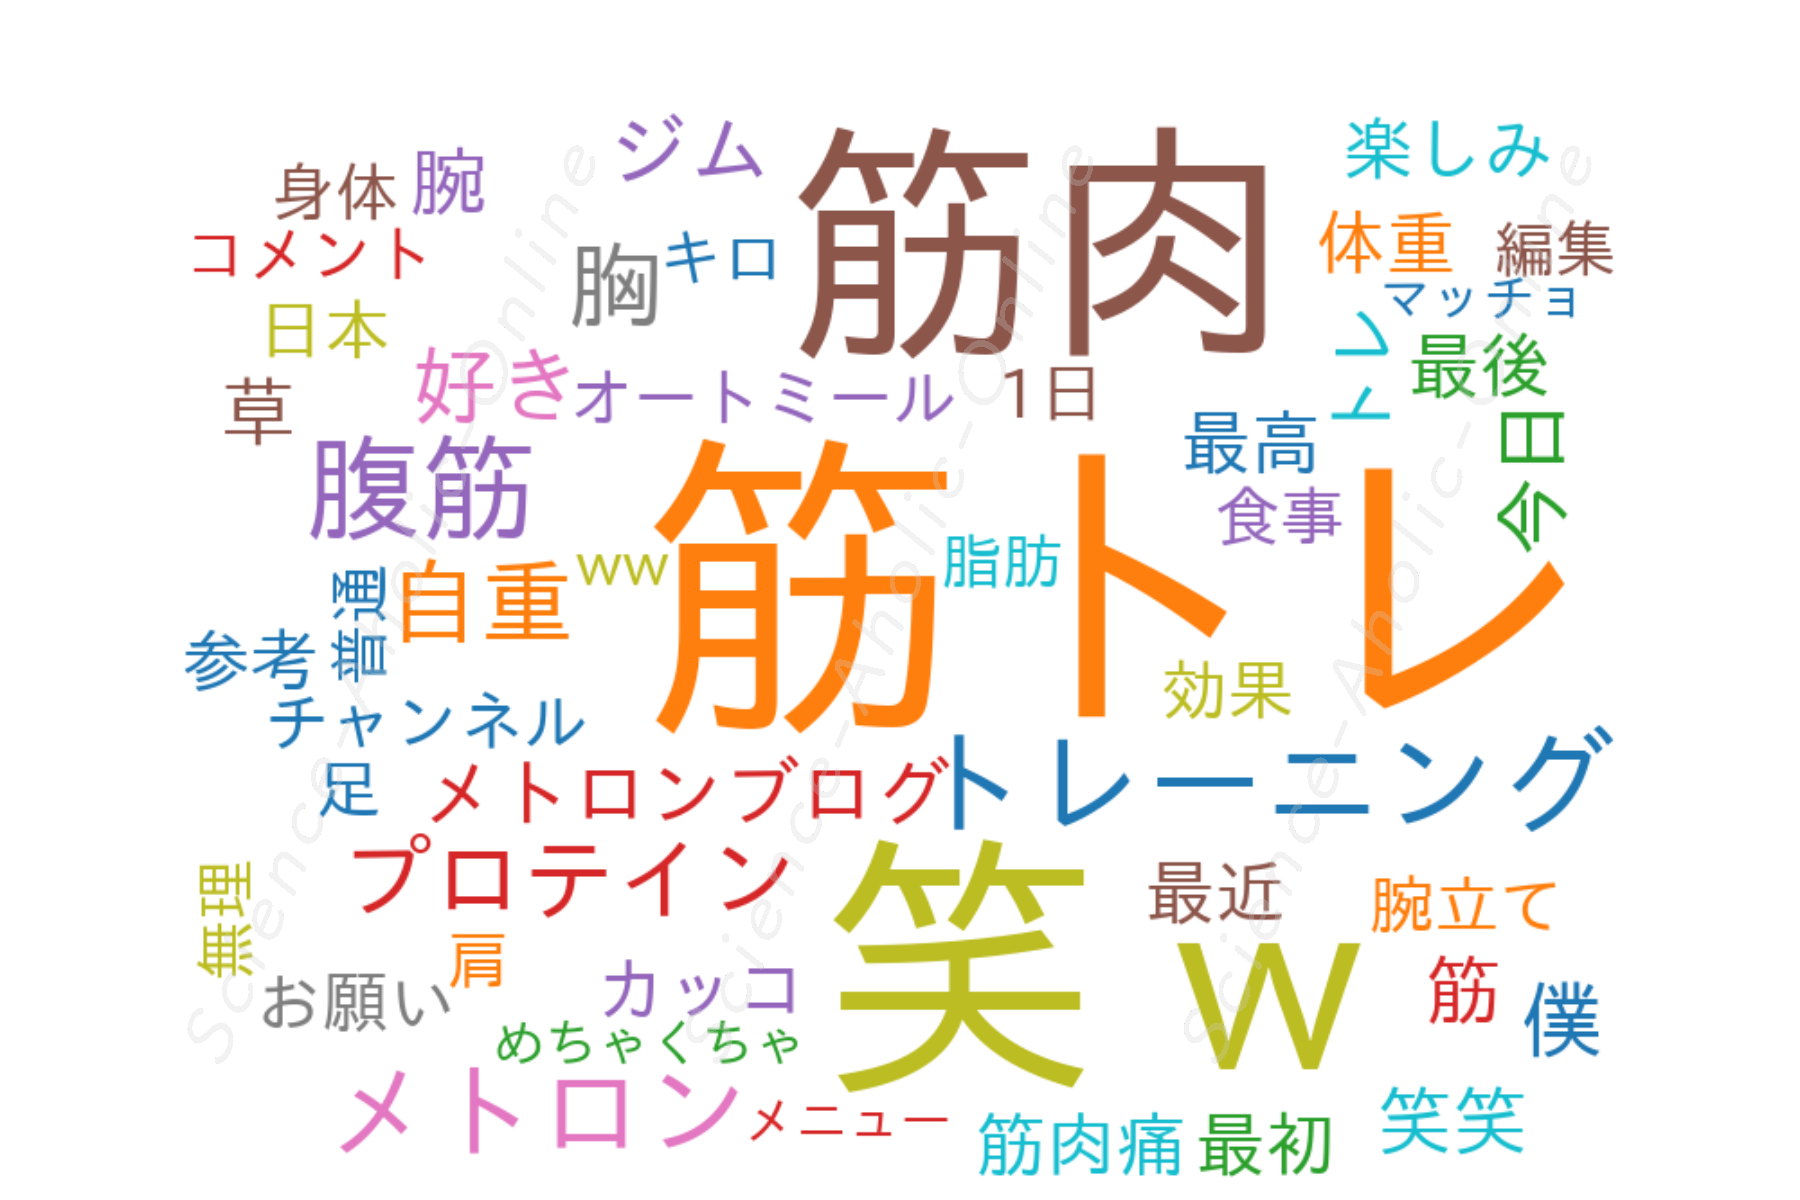 https://science-aholic-online.com/wp-content/uploads/2020/08/wordcloud_メトロンブログ.png